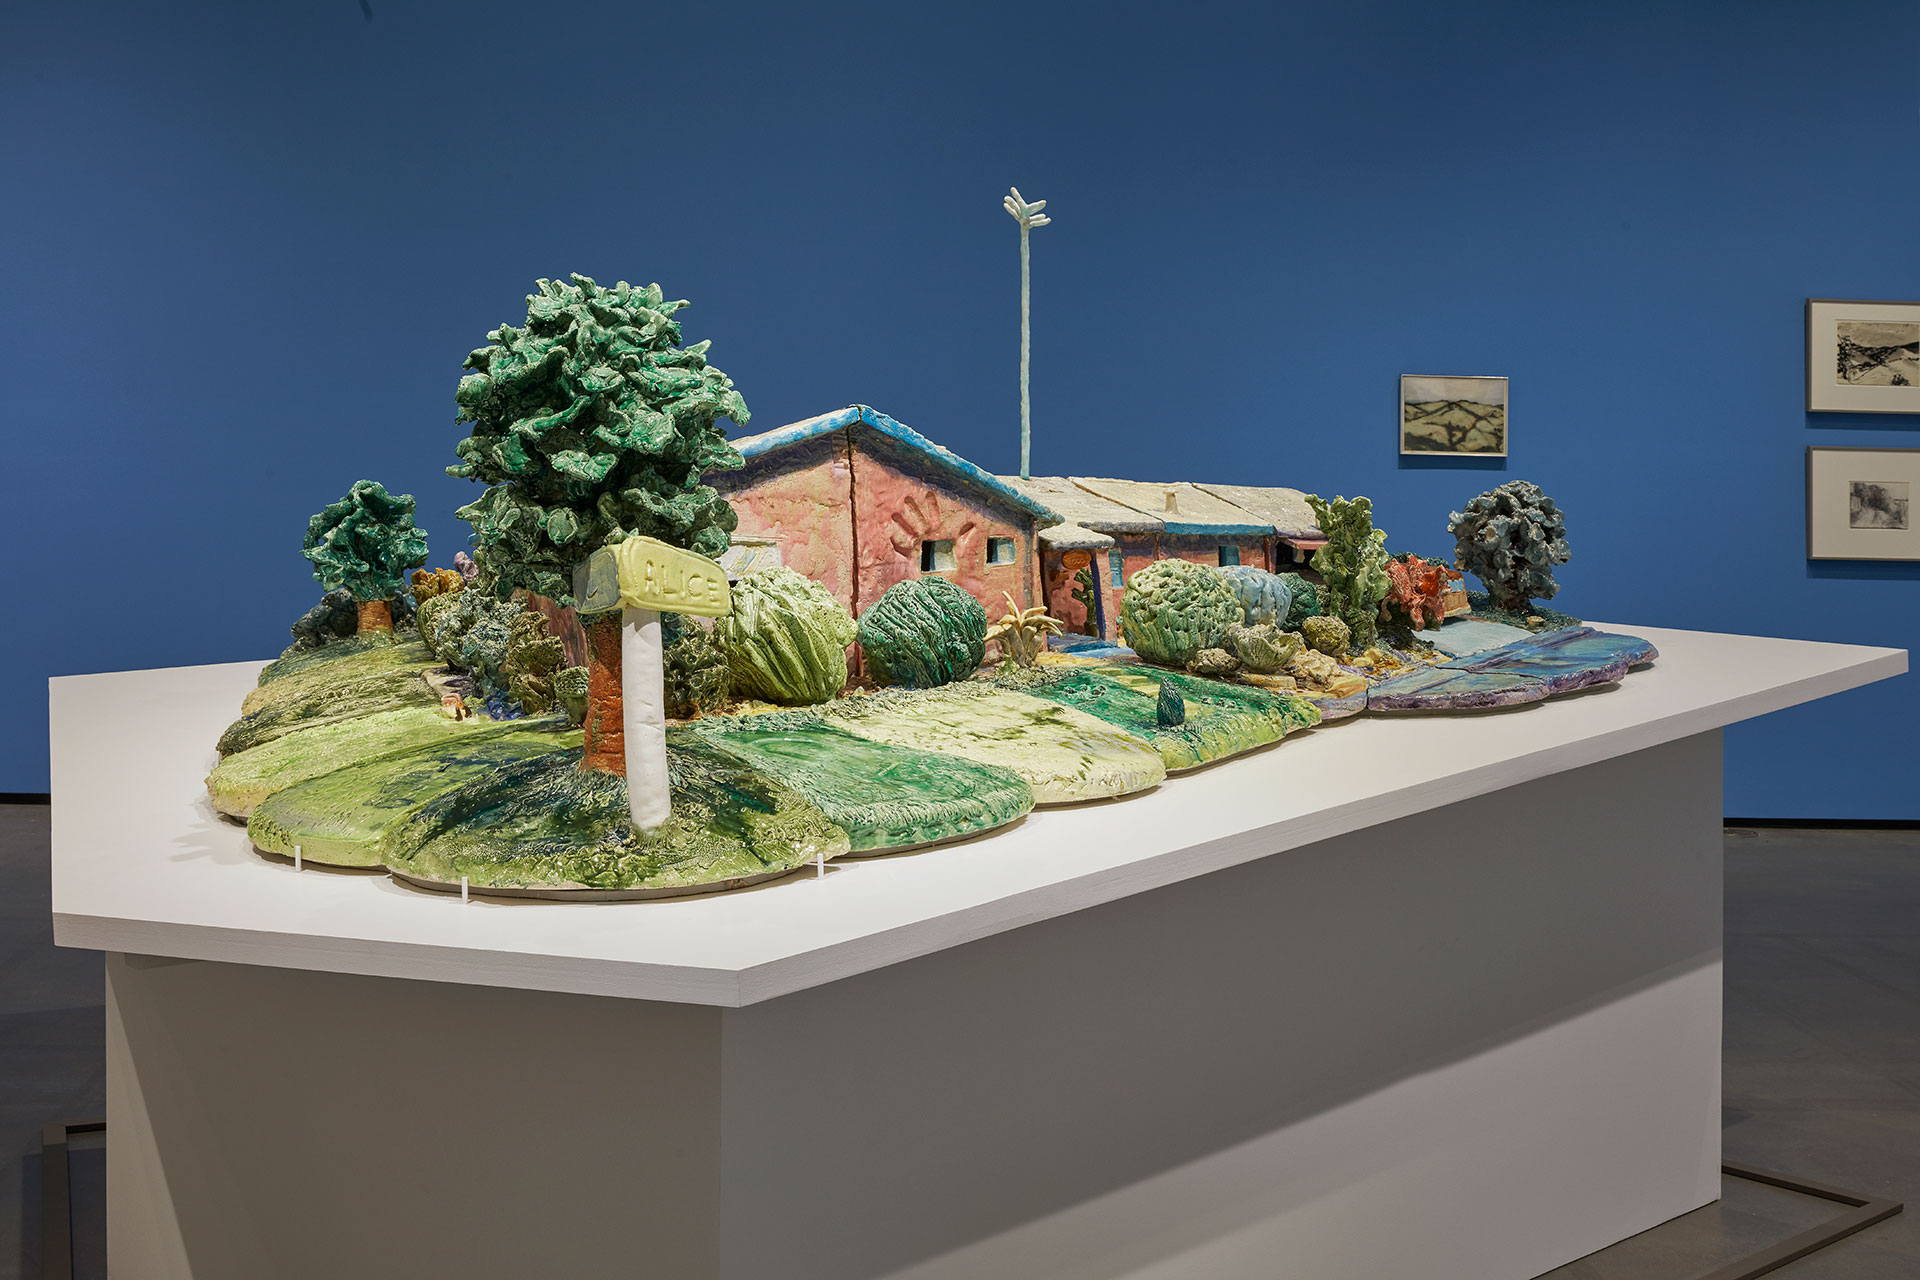 Ceramic sculpture of a house with yard and tree.